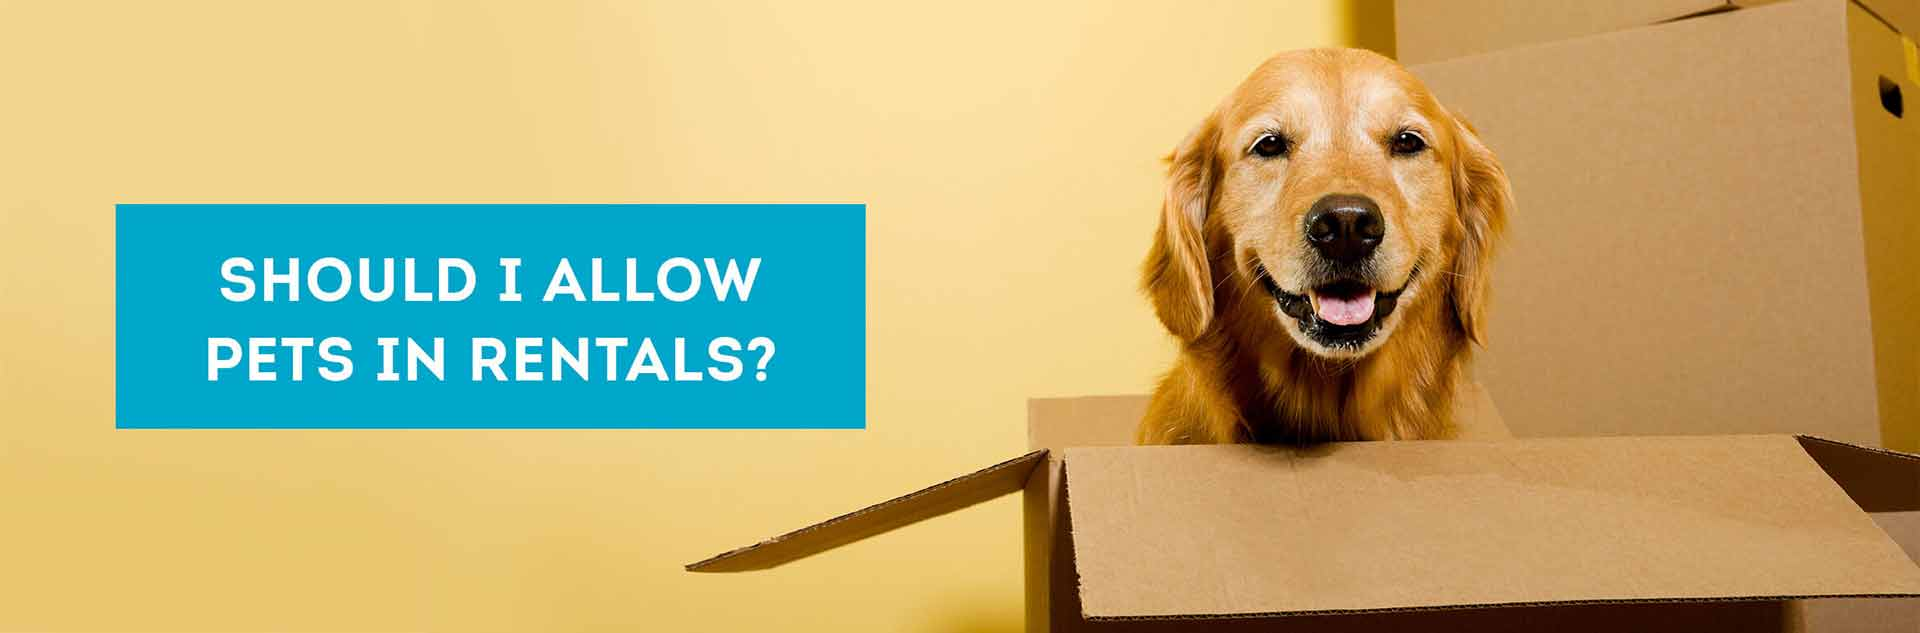 landlord pros and cons of pets in rental properties